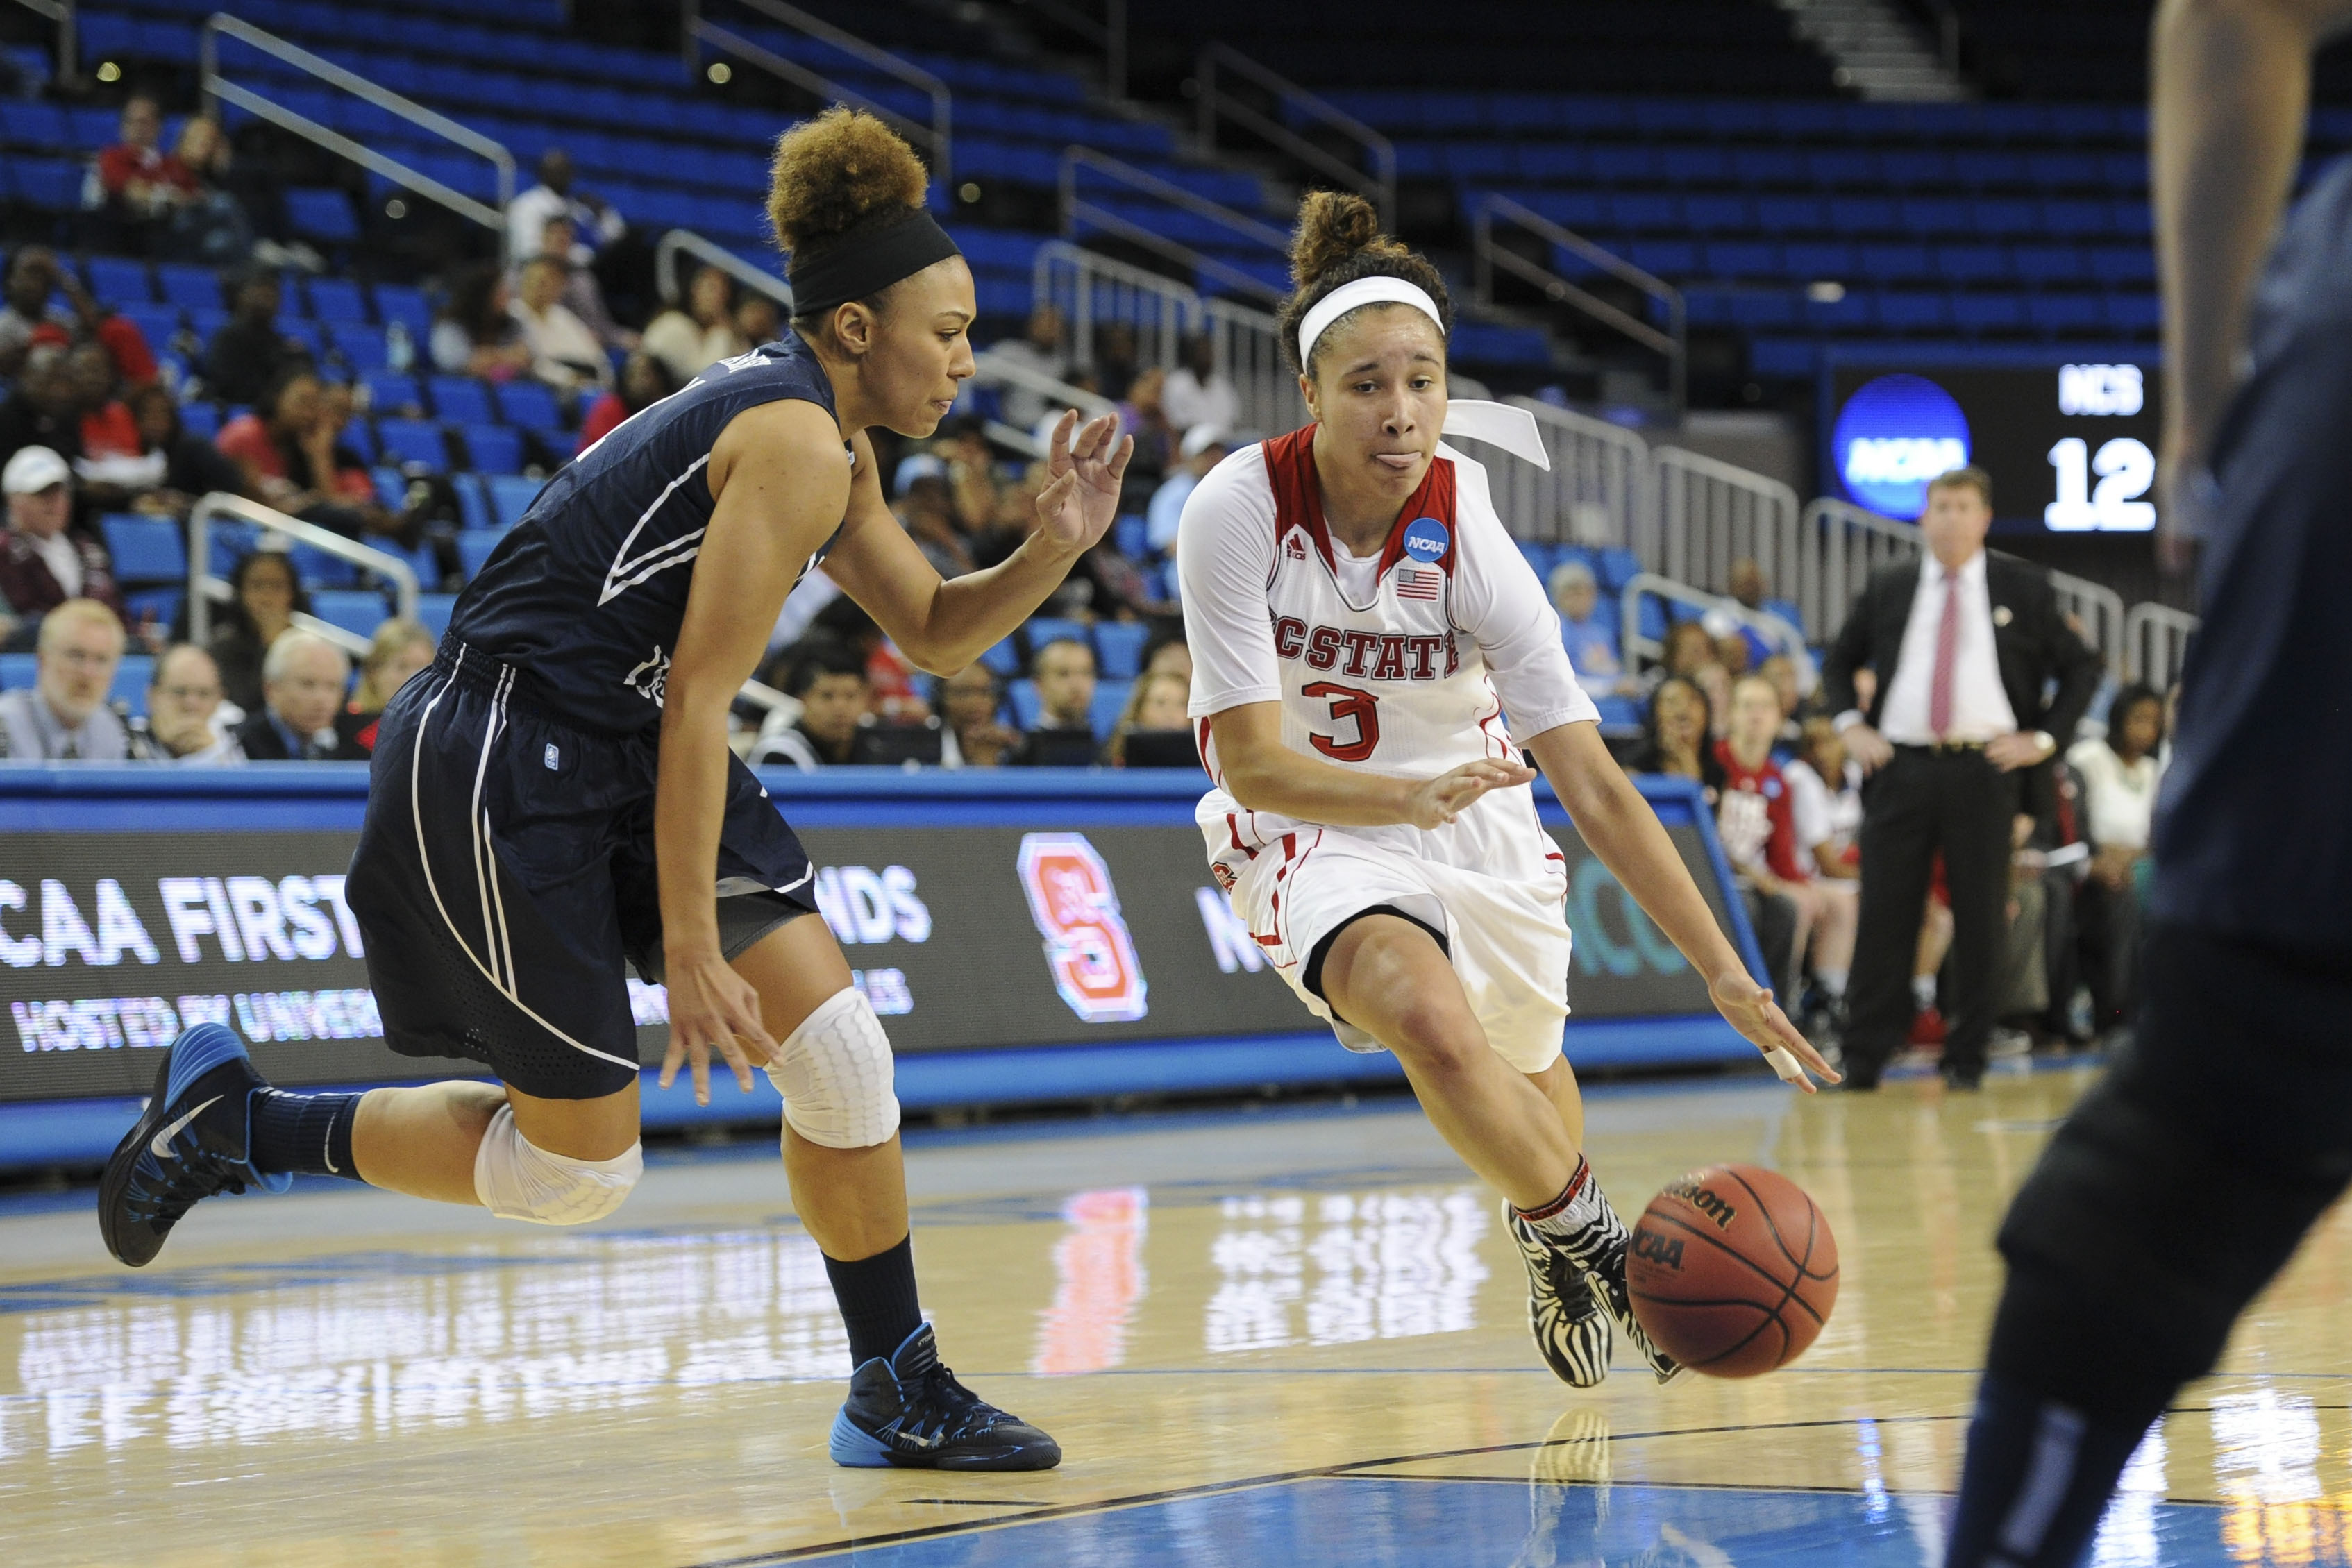 Harry earned career highs in most categories as she helped the Cougars win games.